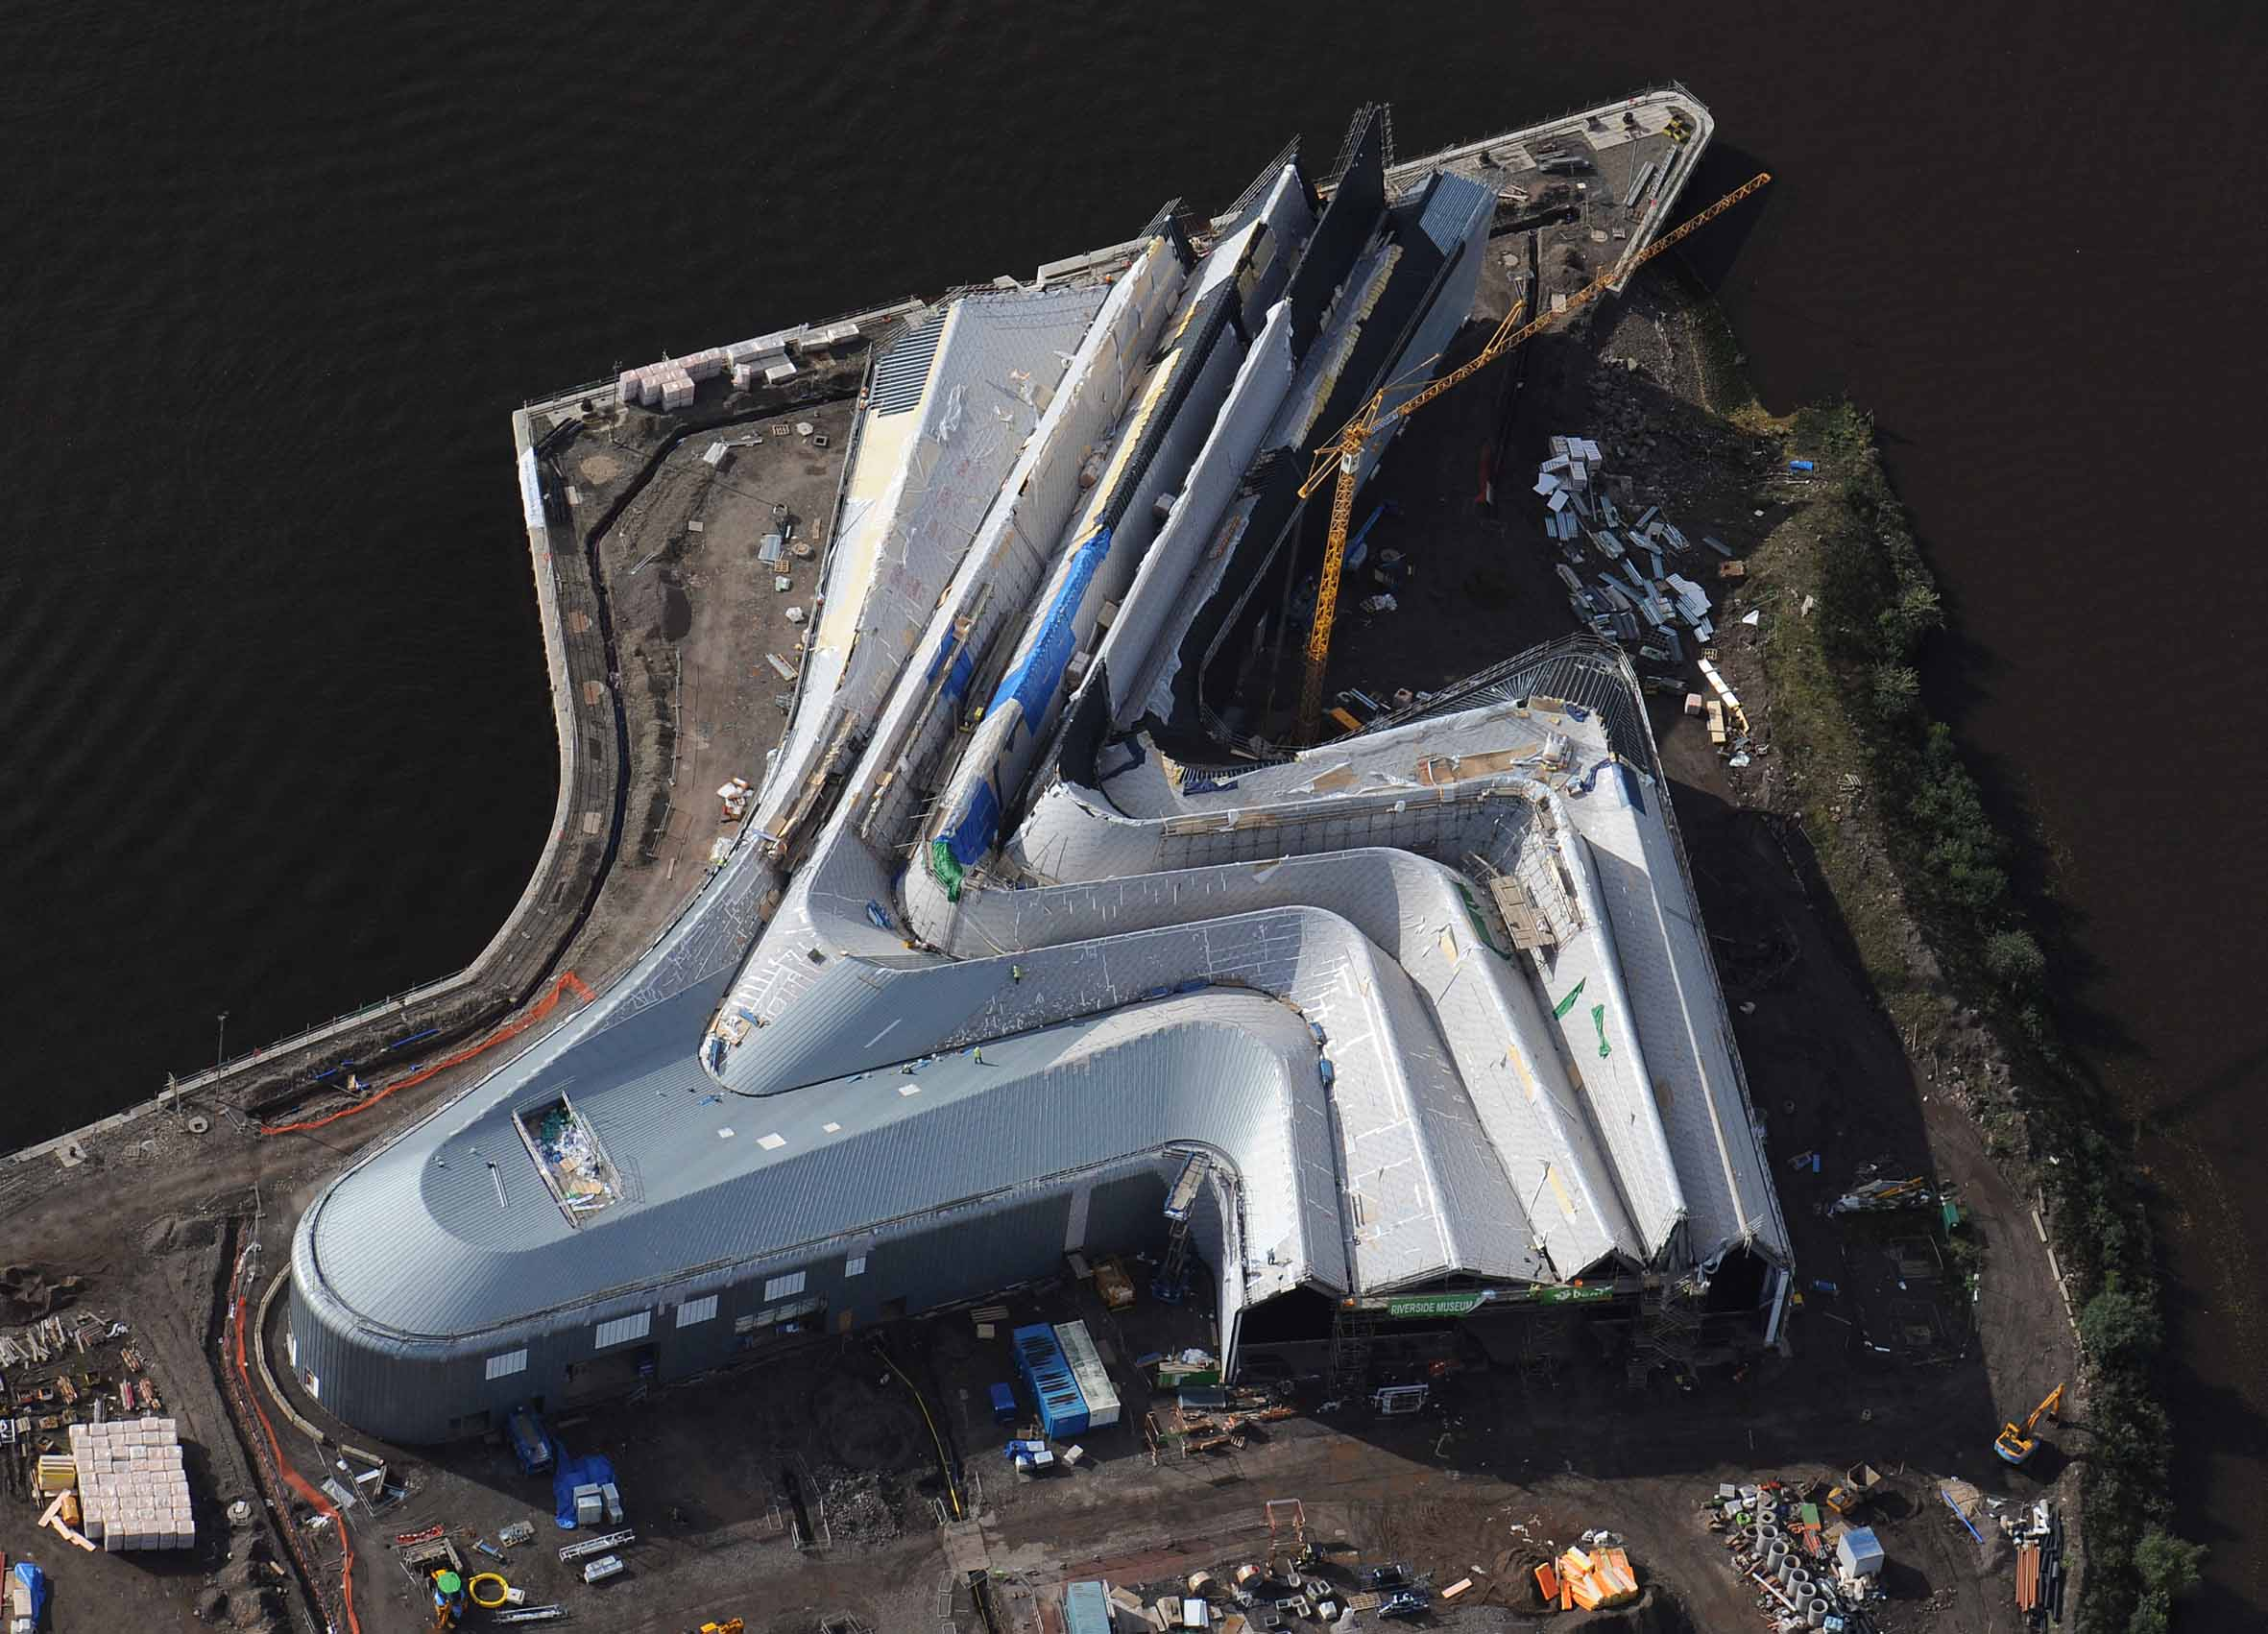 Museum of Transport, Glasgow, United Kingdom - Zaha Hadid Architects, Riverside Museum Project, Museum of Transport, Glasgow, United Kingdom (2006 – 2008)